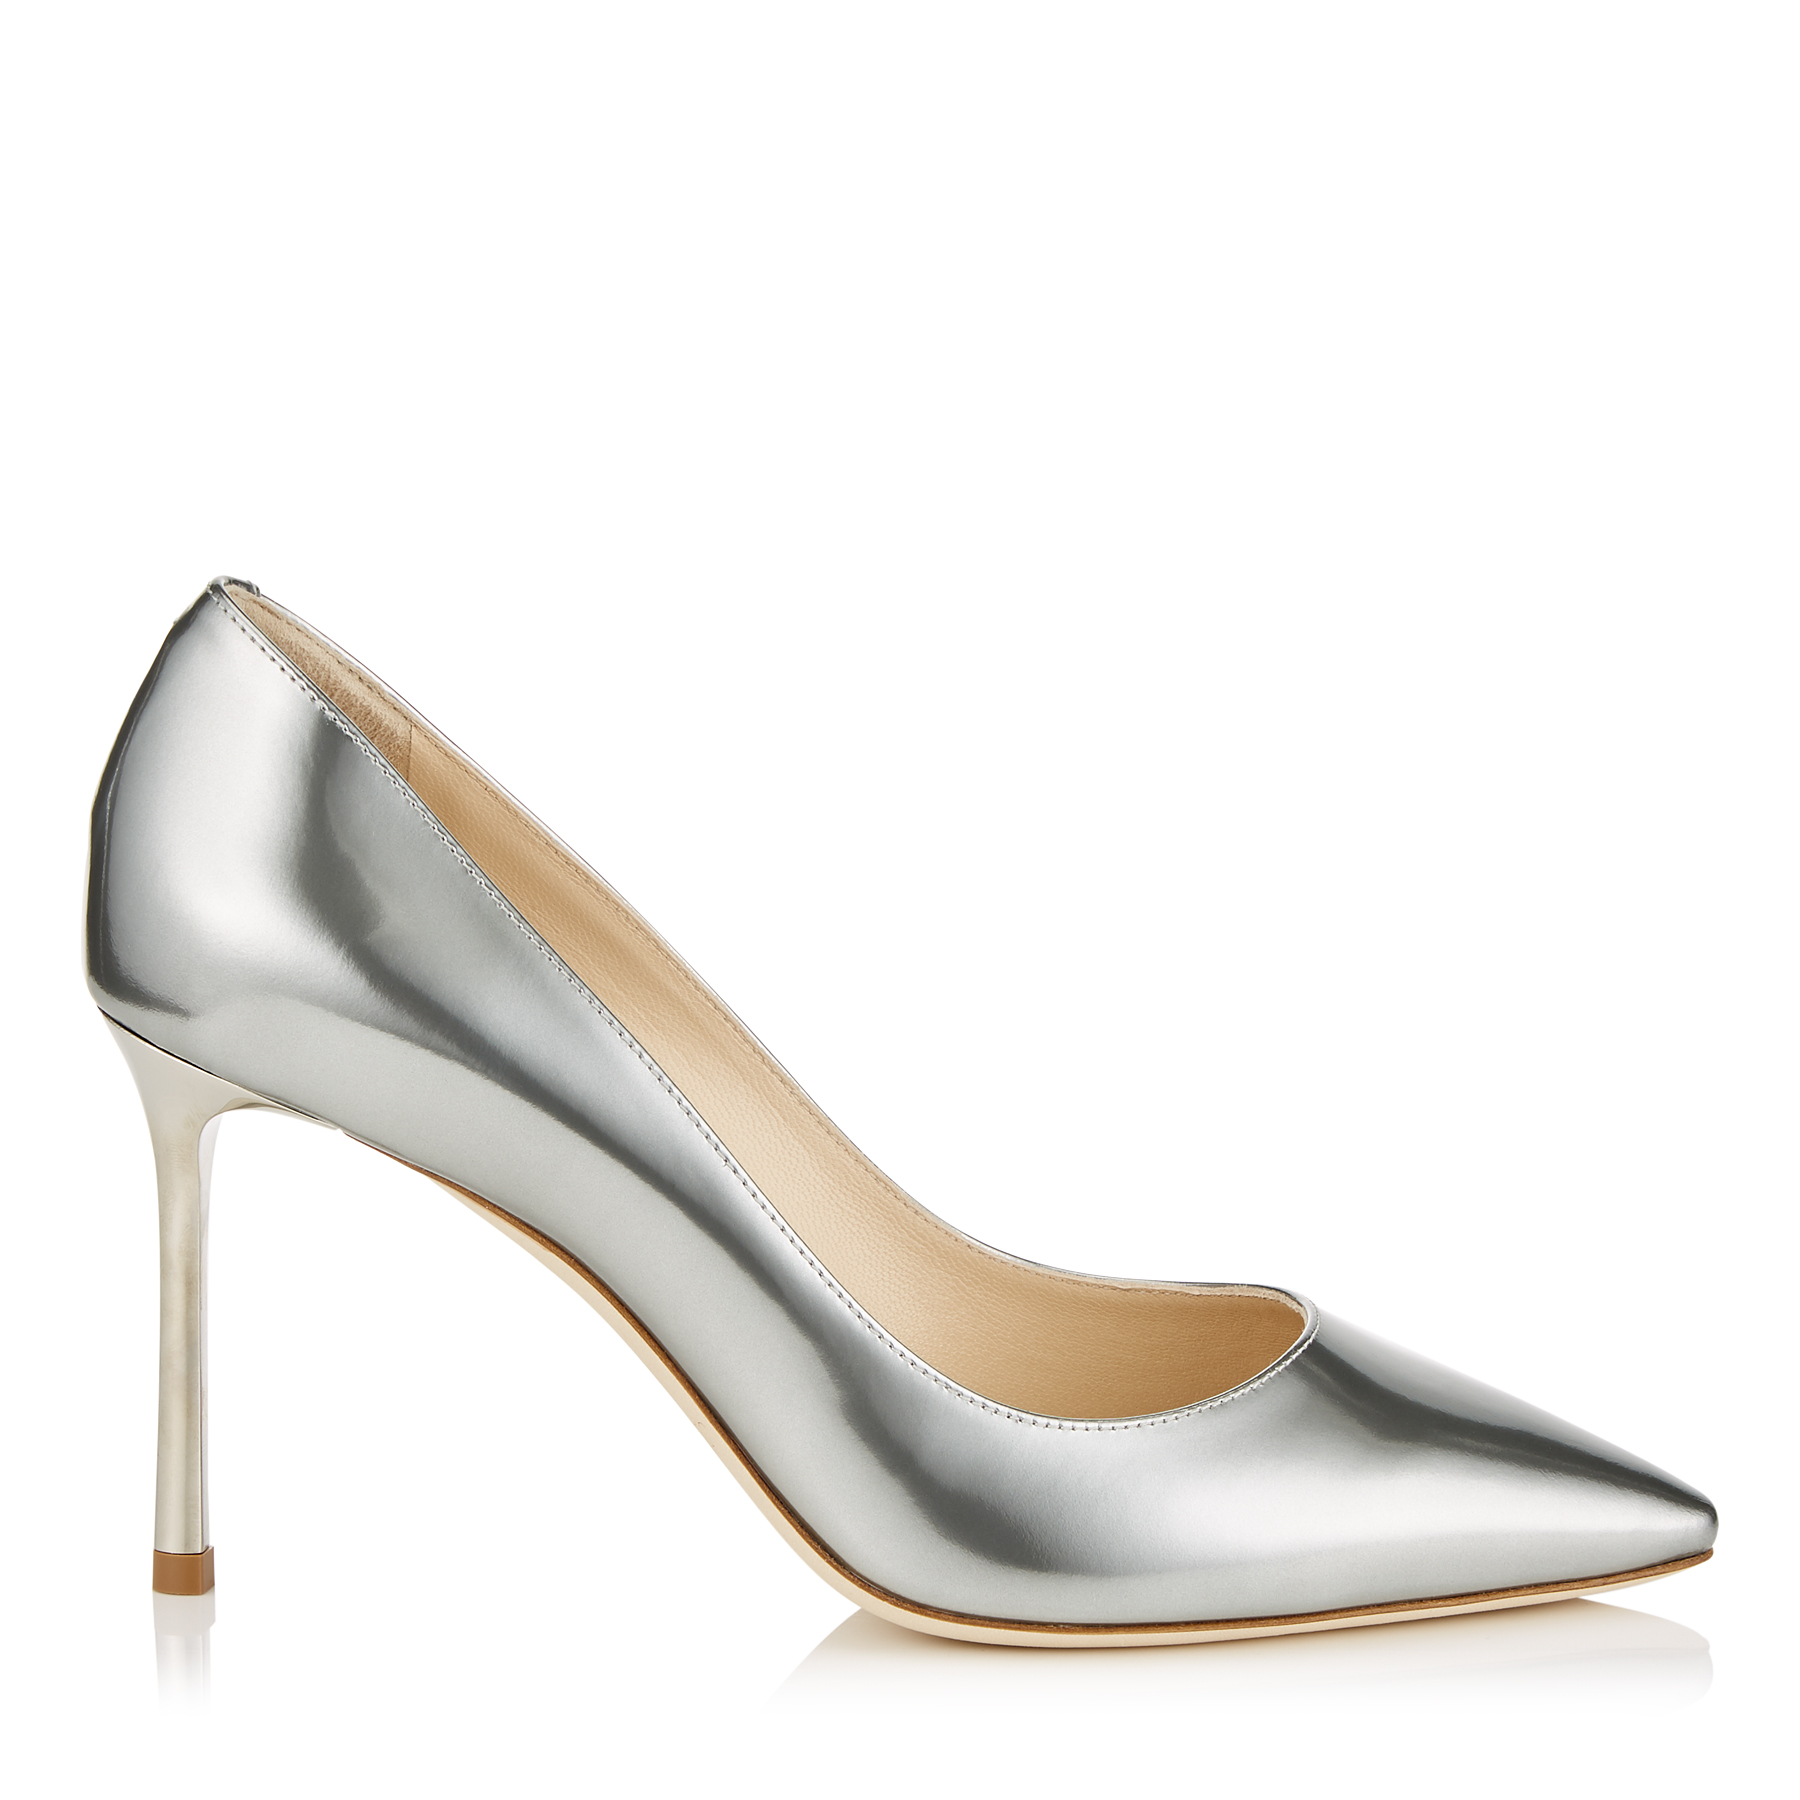 ROMY 85 Silver Liquid Mirror Leather Pointy Toe Pumps by Jimmy Choo